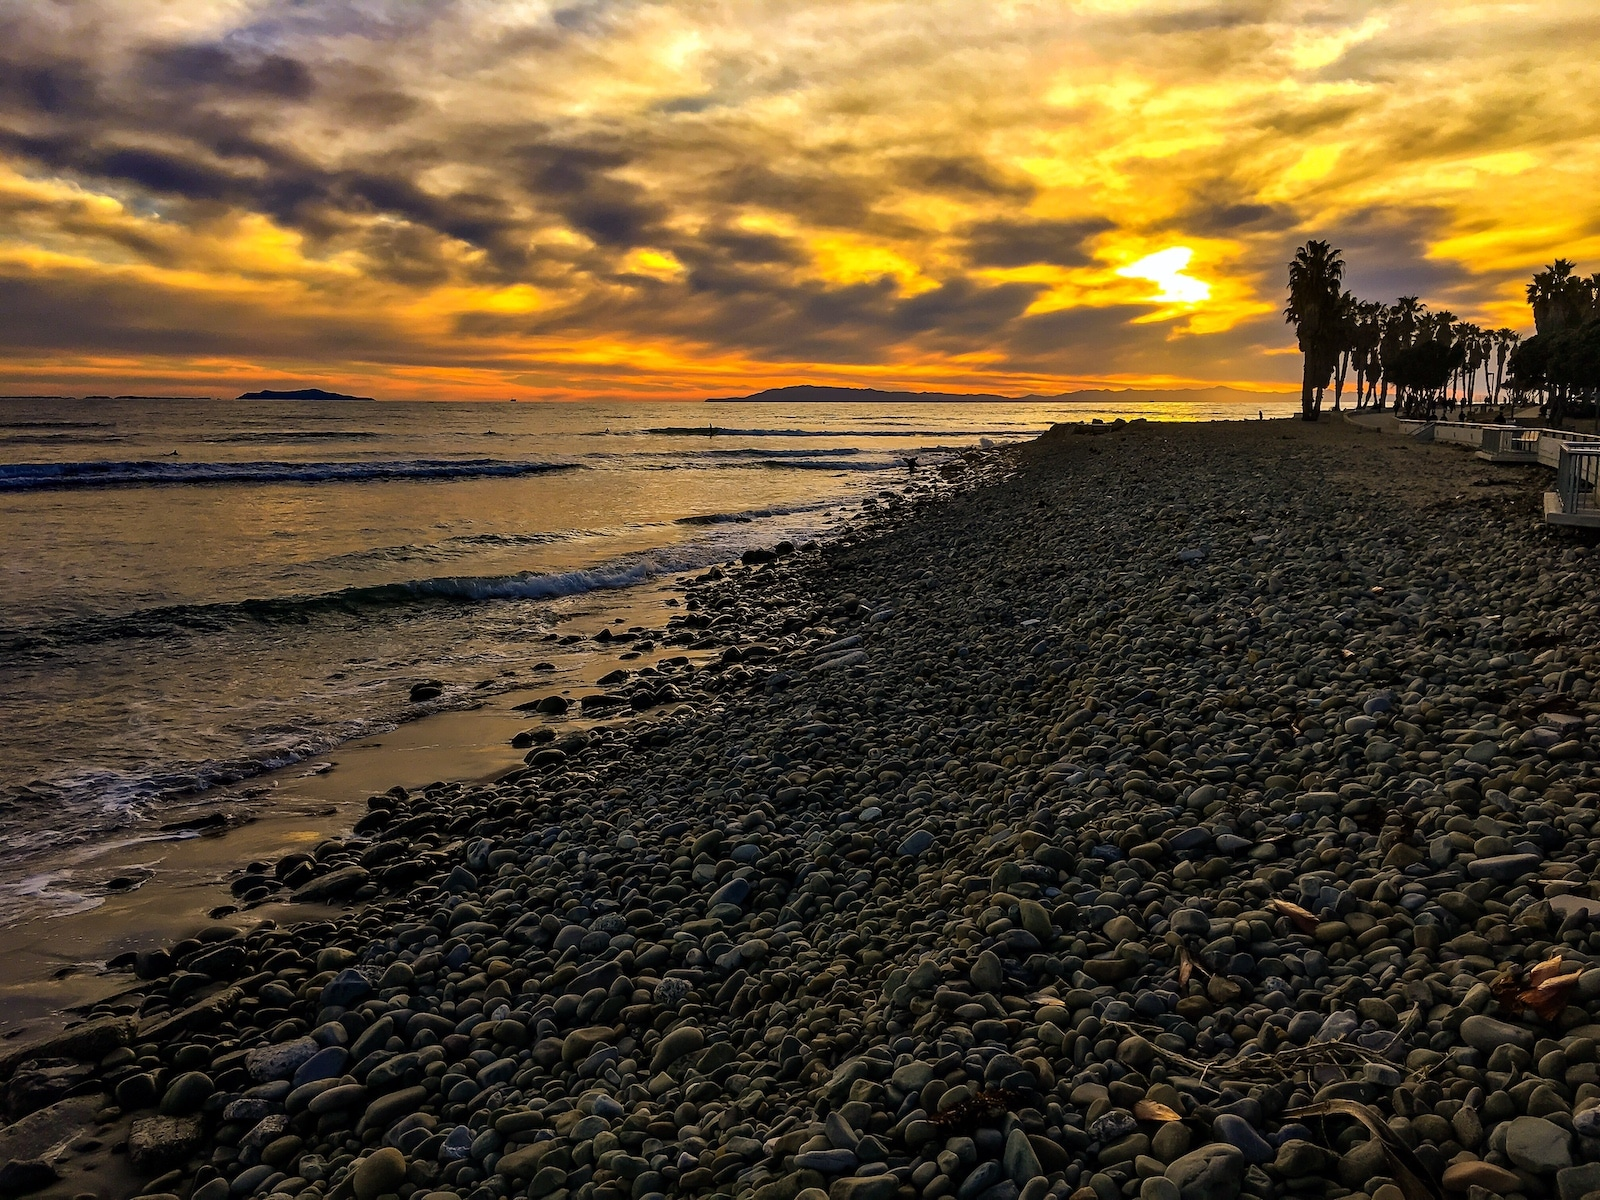 Surfer's Point Beach, Ventura